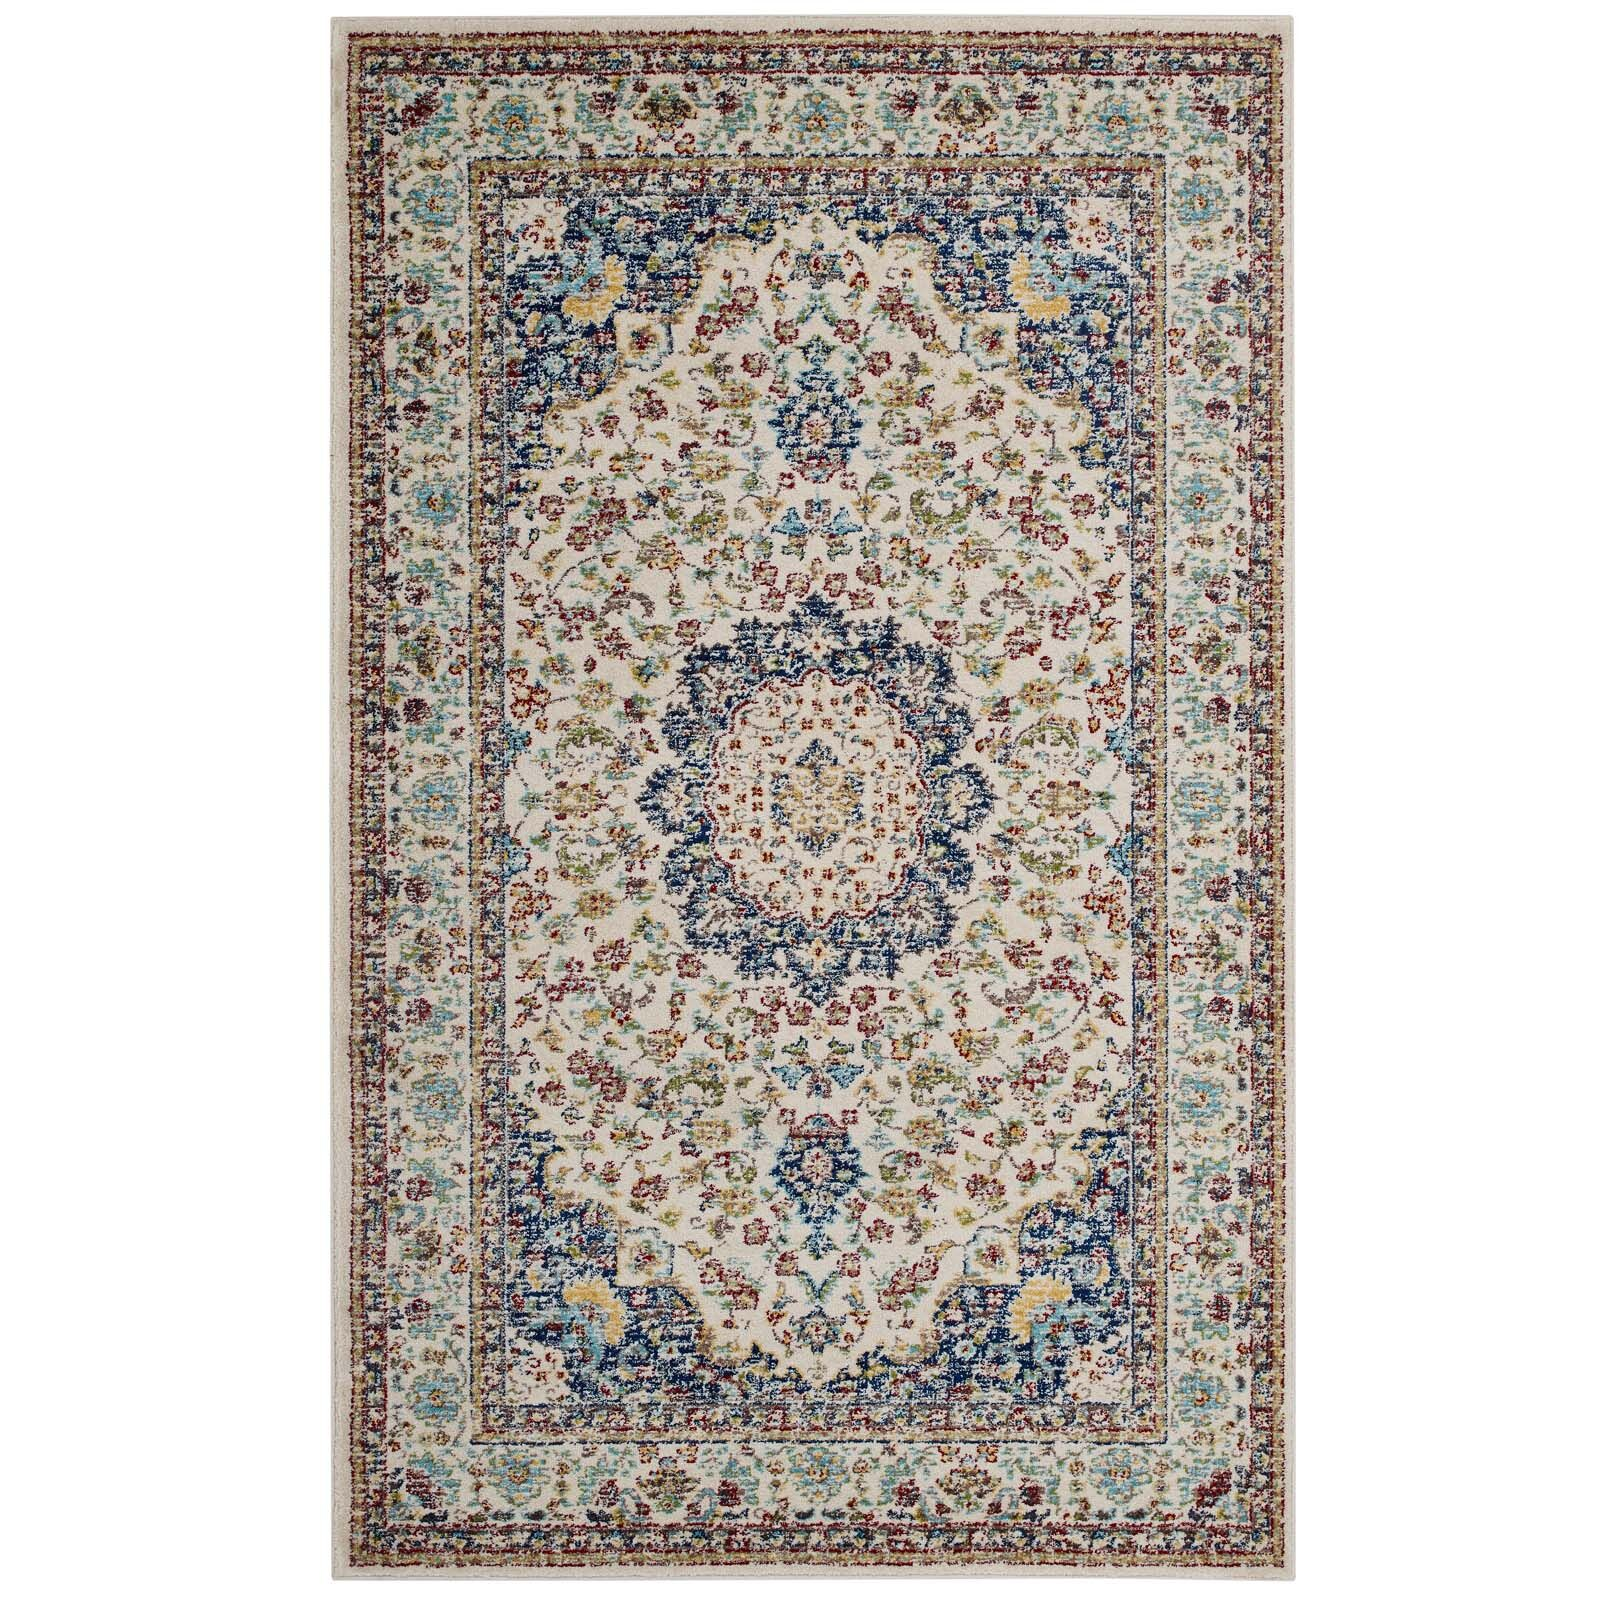 Fulcher Persian Medallion Blue/Beige Area Rug Rug Size: Rectangle 8' x 10'